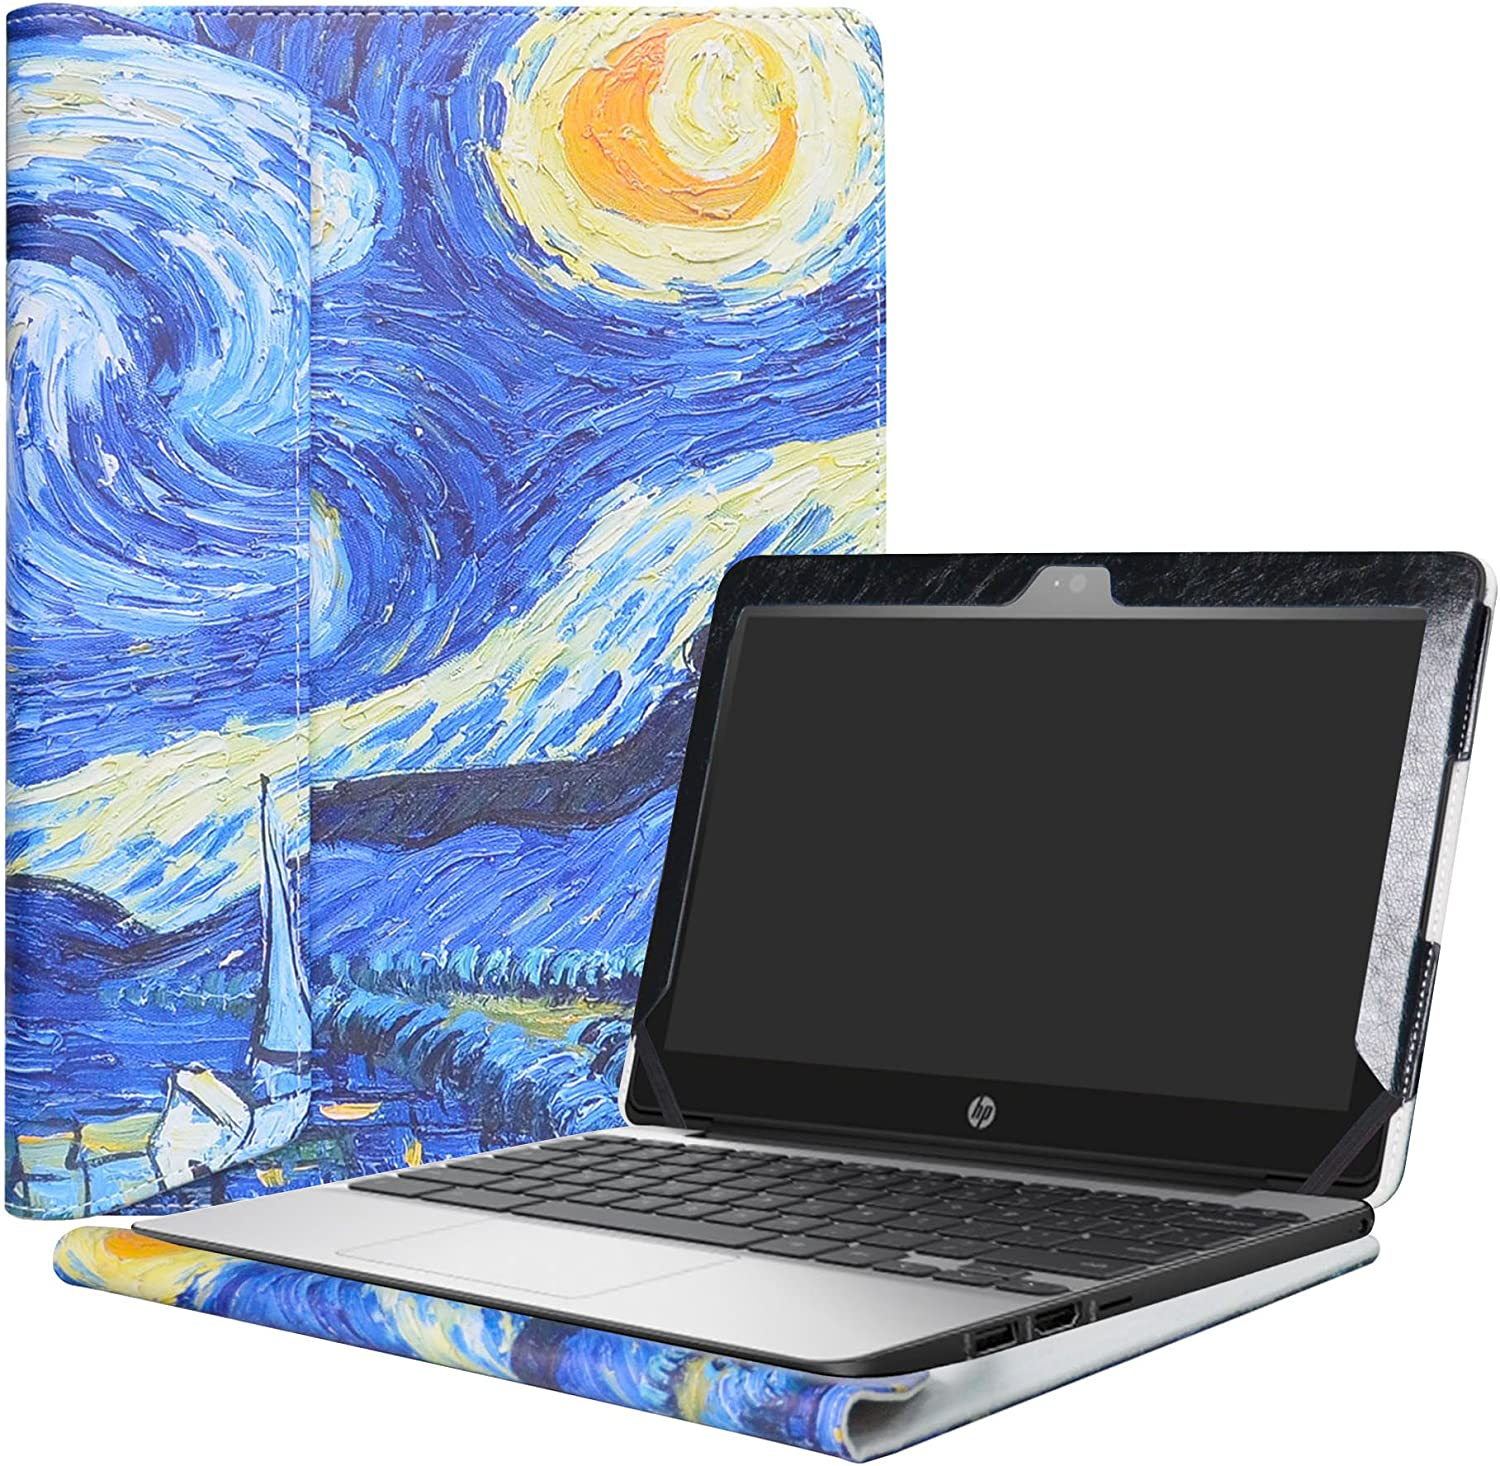 "Alapmk Protective Case Cover for 11.6"" HP Chromebook 11 G5 EE/G4/G3/G2/G4 EE/11-2000 Series Laptop(Warning:Not fit HP Chromebook 11 G6 EE/G5/G1/11-v000/11-1100 Series),Starry Night"